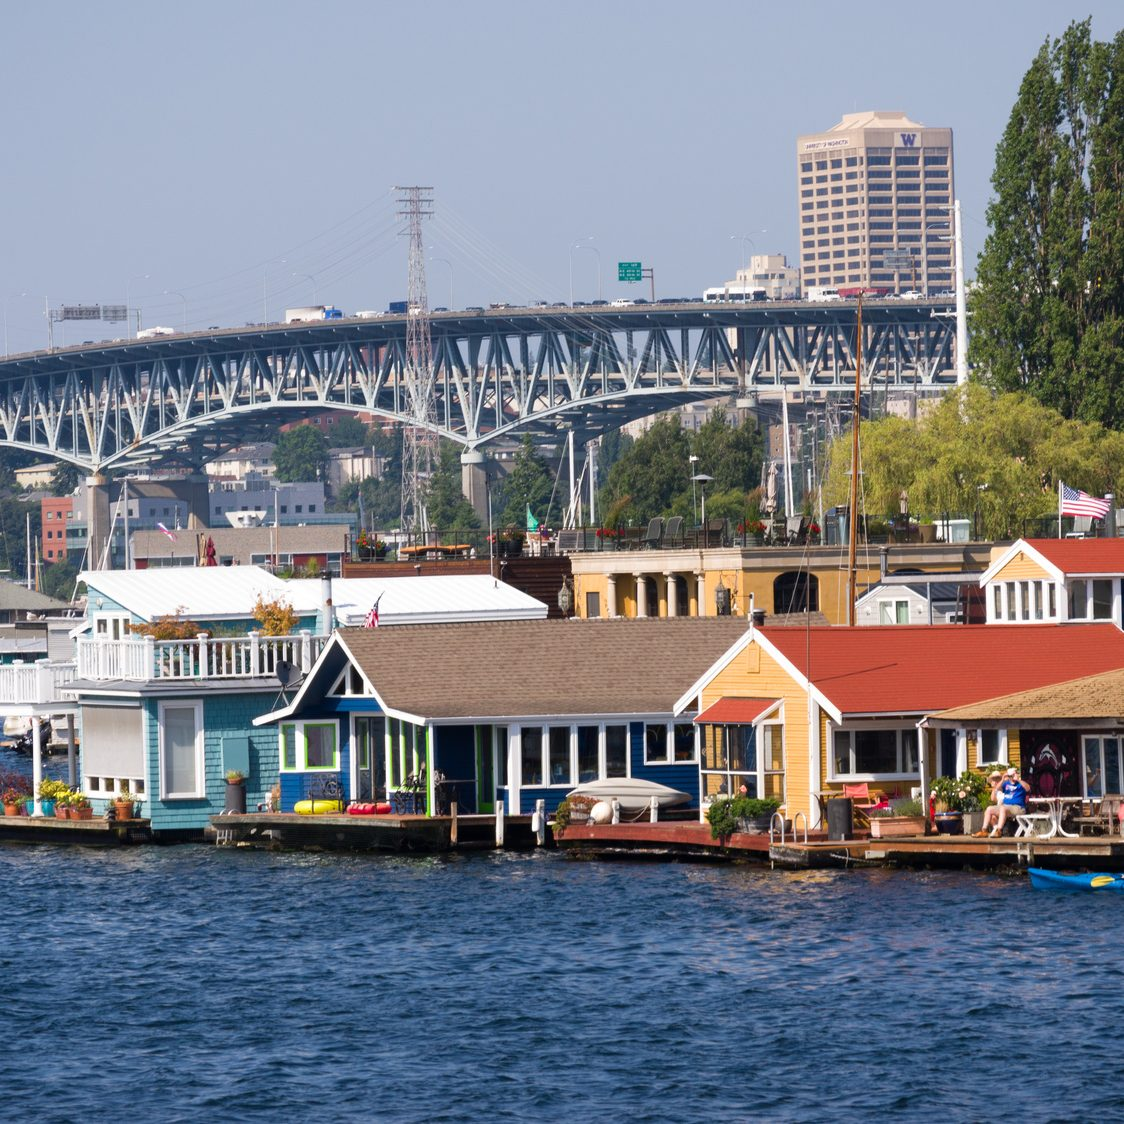 Houseboats in Seattle, WA, USA